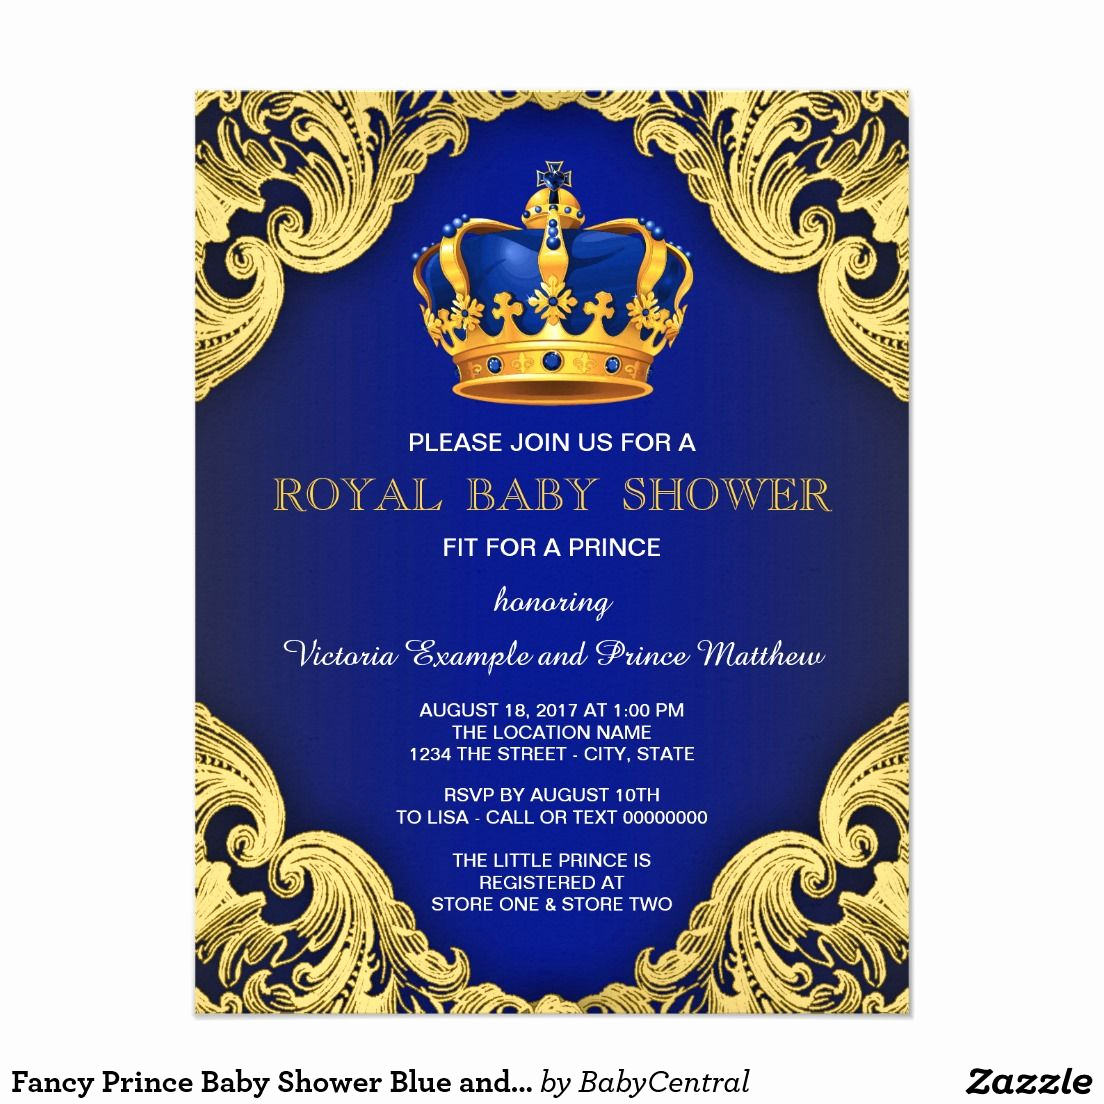 Royal Baby Shower Invitation Wording Fresh Fancy Prince Baby Shower Blue and Gold Invitation